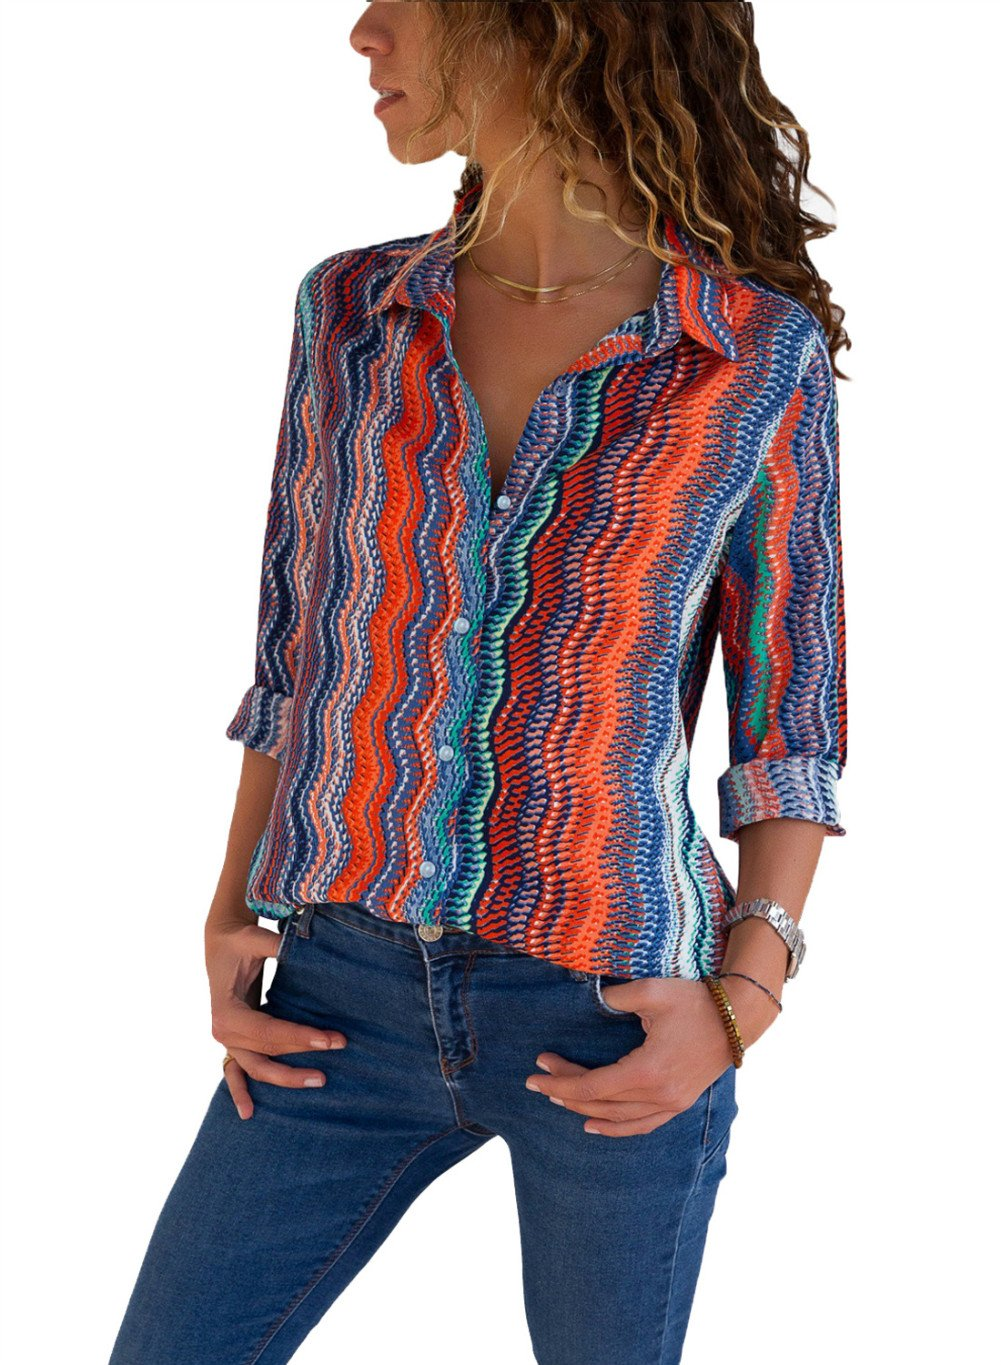 HUUSA Womens Casual Shirts Elegant Loose Long Sleeve Summer V Neck Button up Color Block Stripes Peasant Blouse Top L Multicoloured